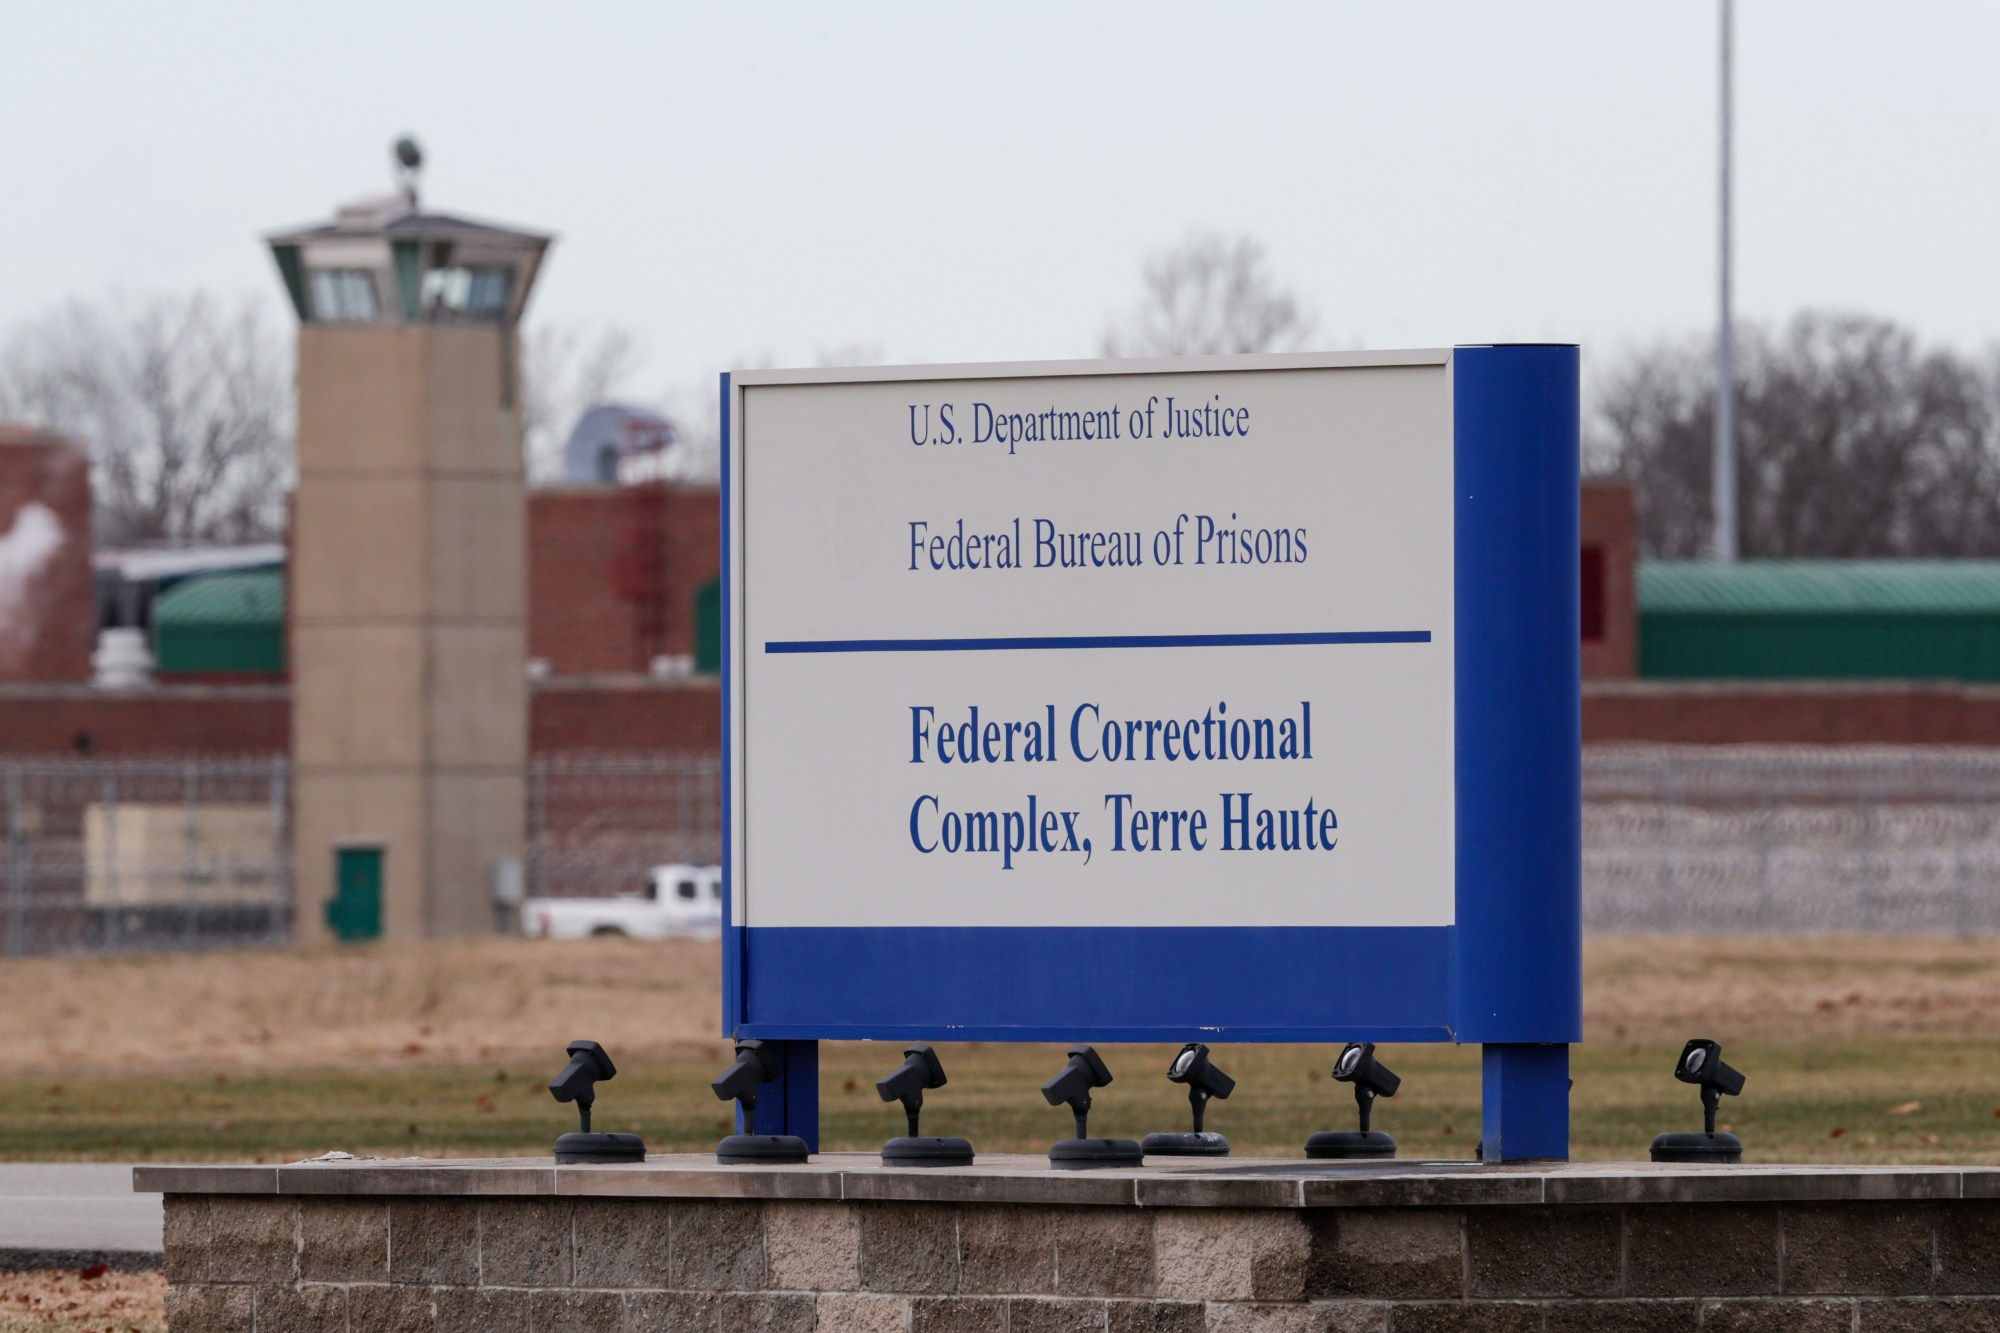 The guard tower flanks the sign at the entrance to the U.S. Penitentiary in Terre Haute, Ind. on Dec. 10, 2019. (AP Photo/Michael Conroy, File)